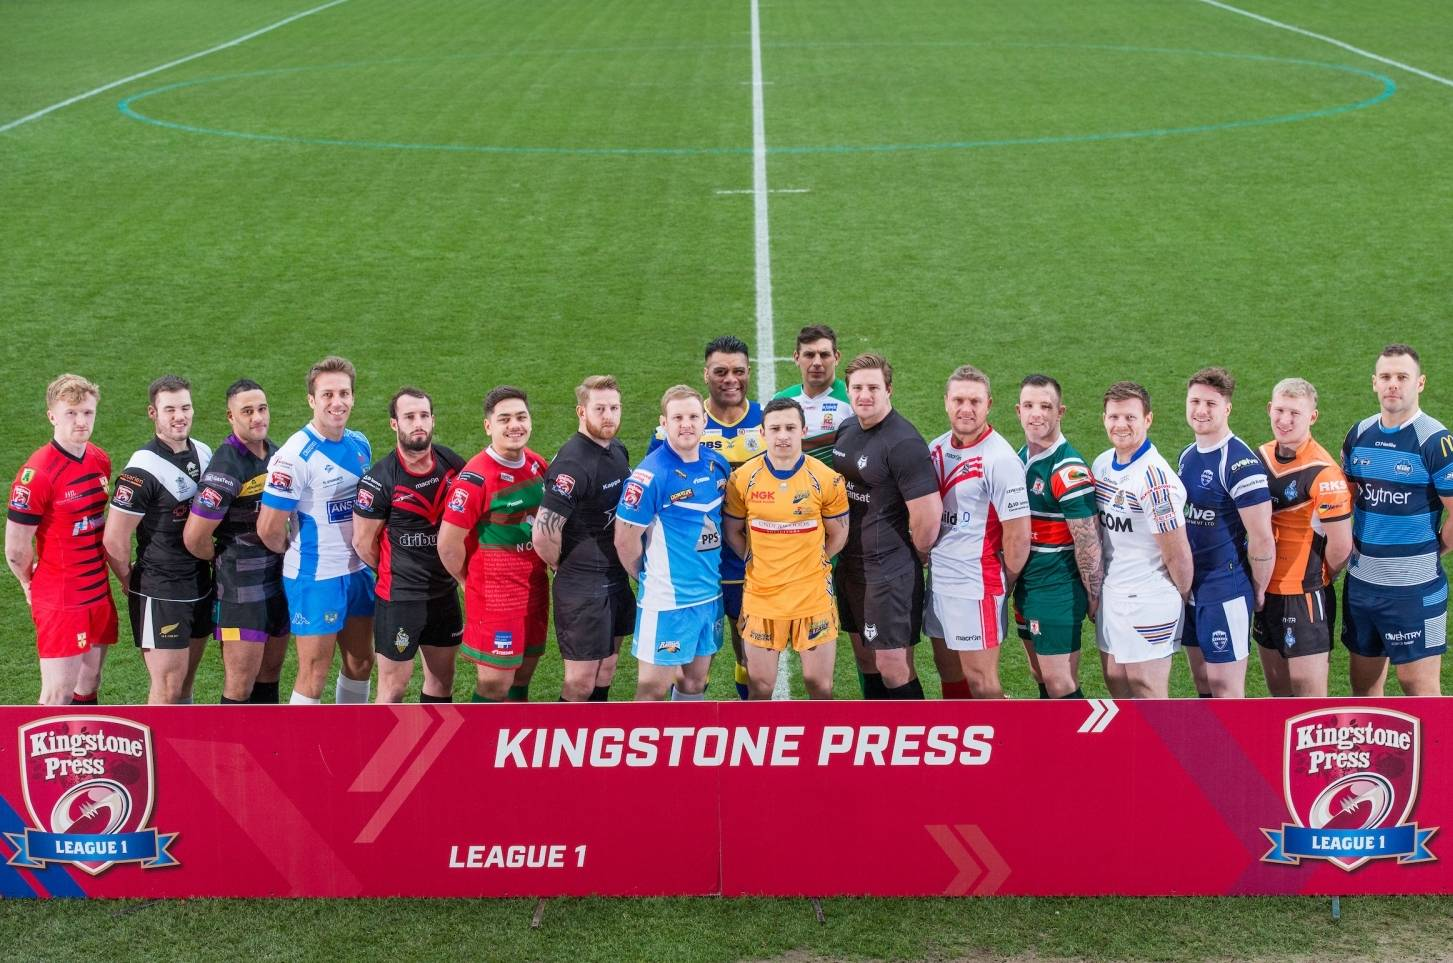 Kingstone Press League 1: Round 7 Preview